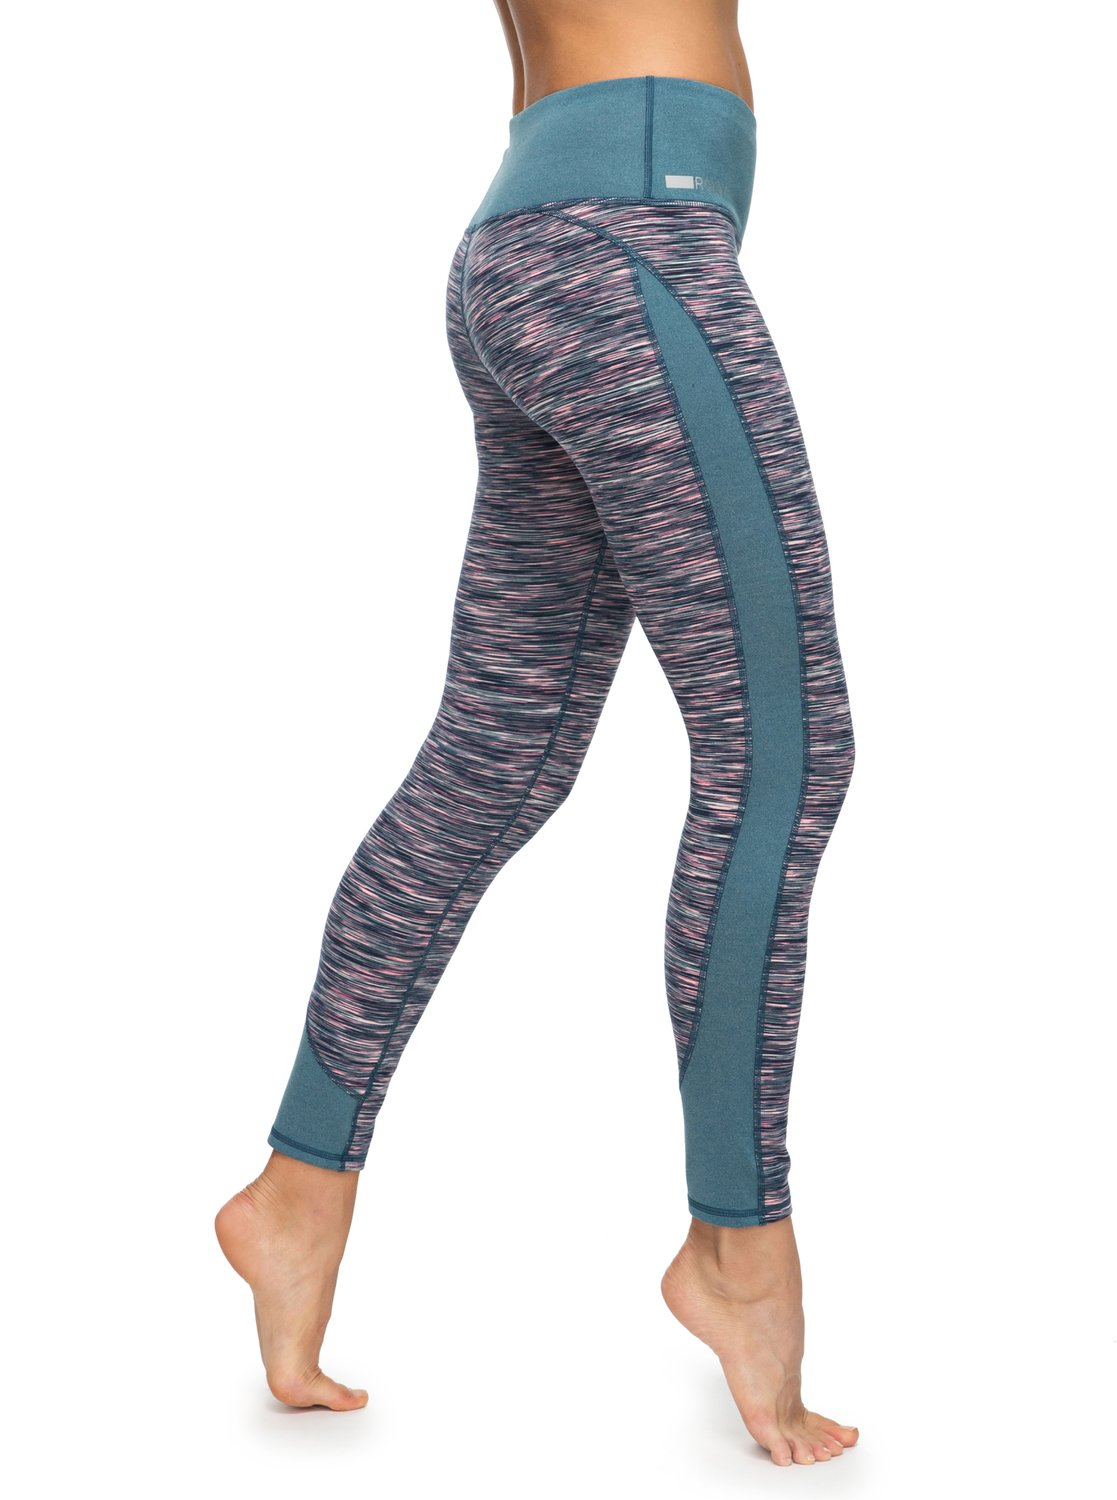 Shop for yoga clothes for women at New York & Company, with a selection that includes yoga pants, leggings and more.